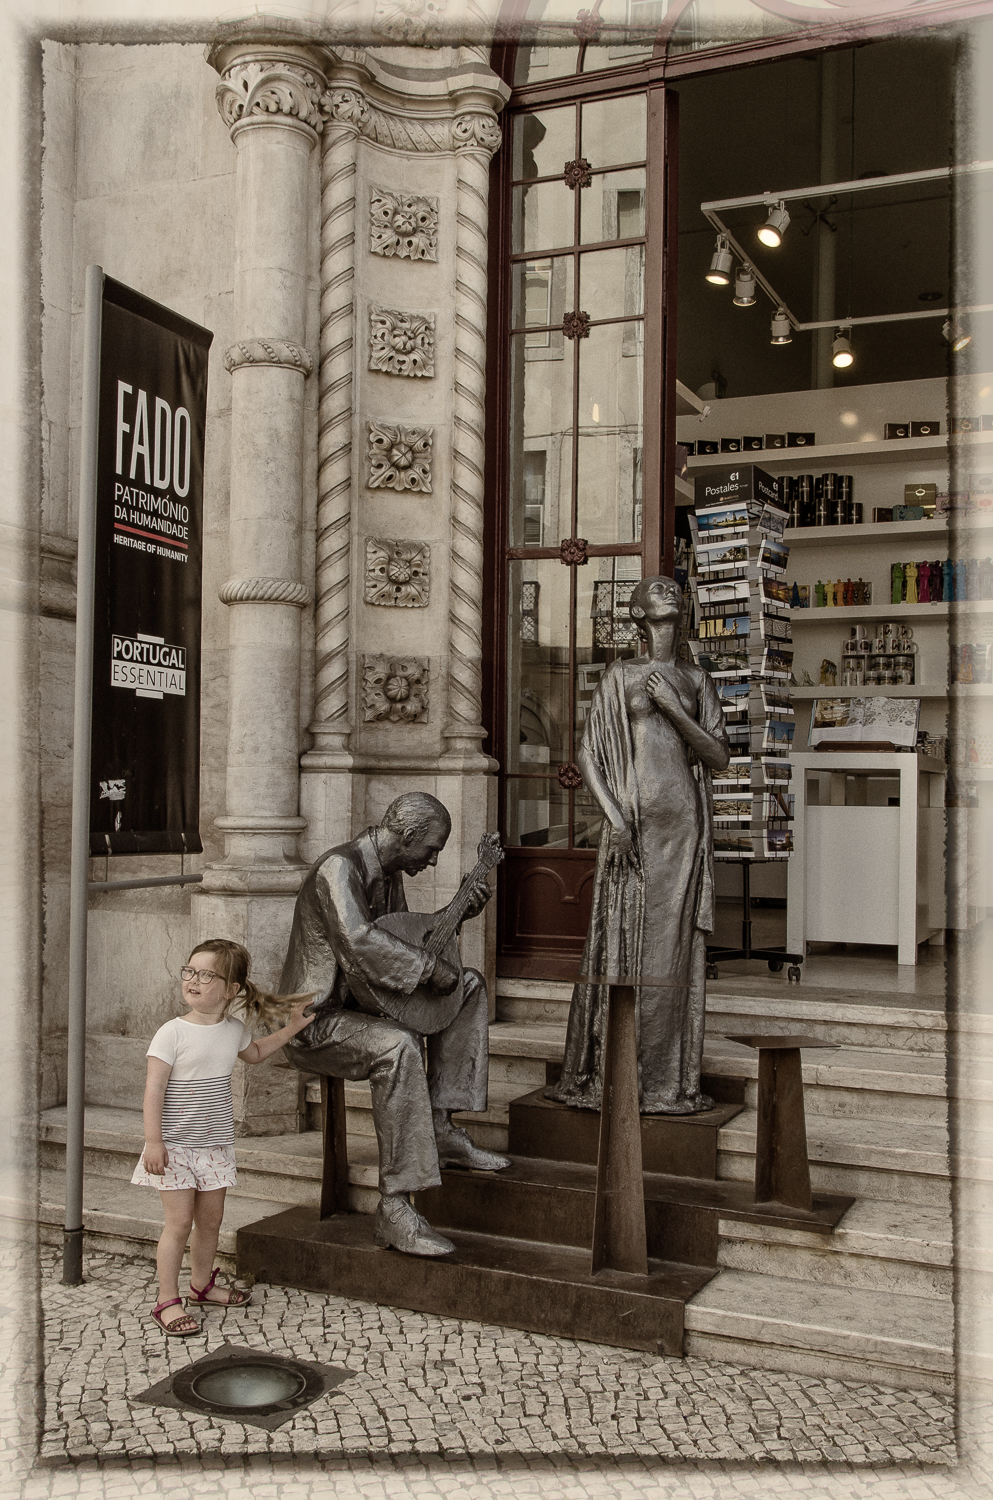 LIttle Girl with Fado Statues